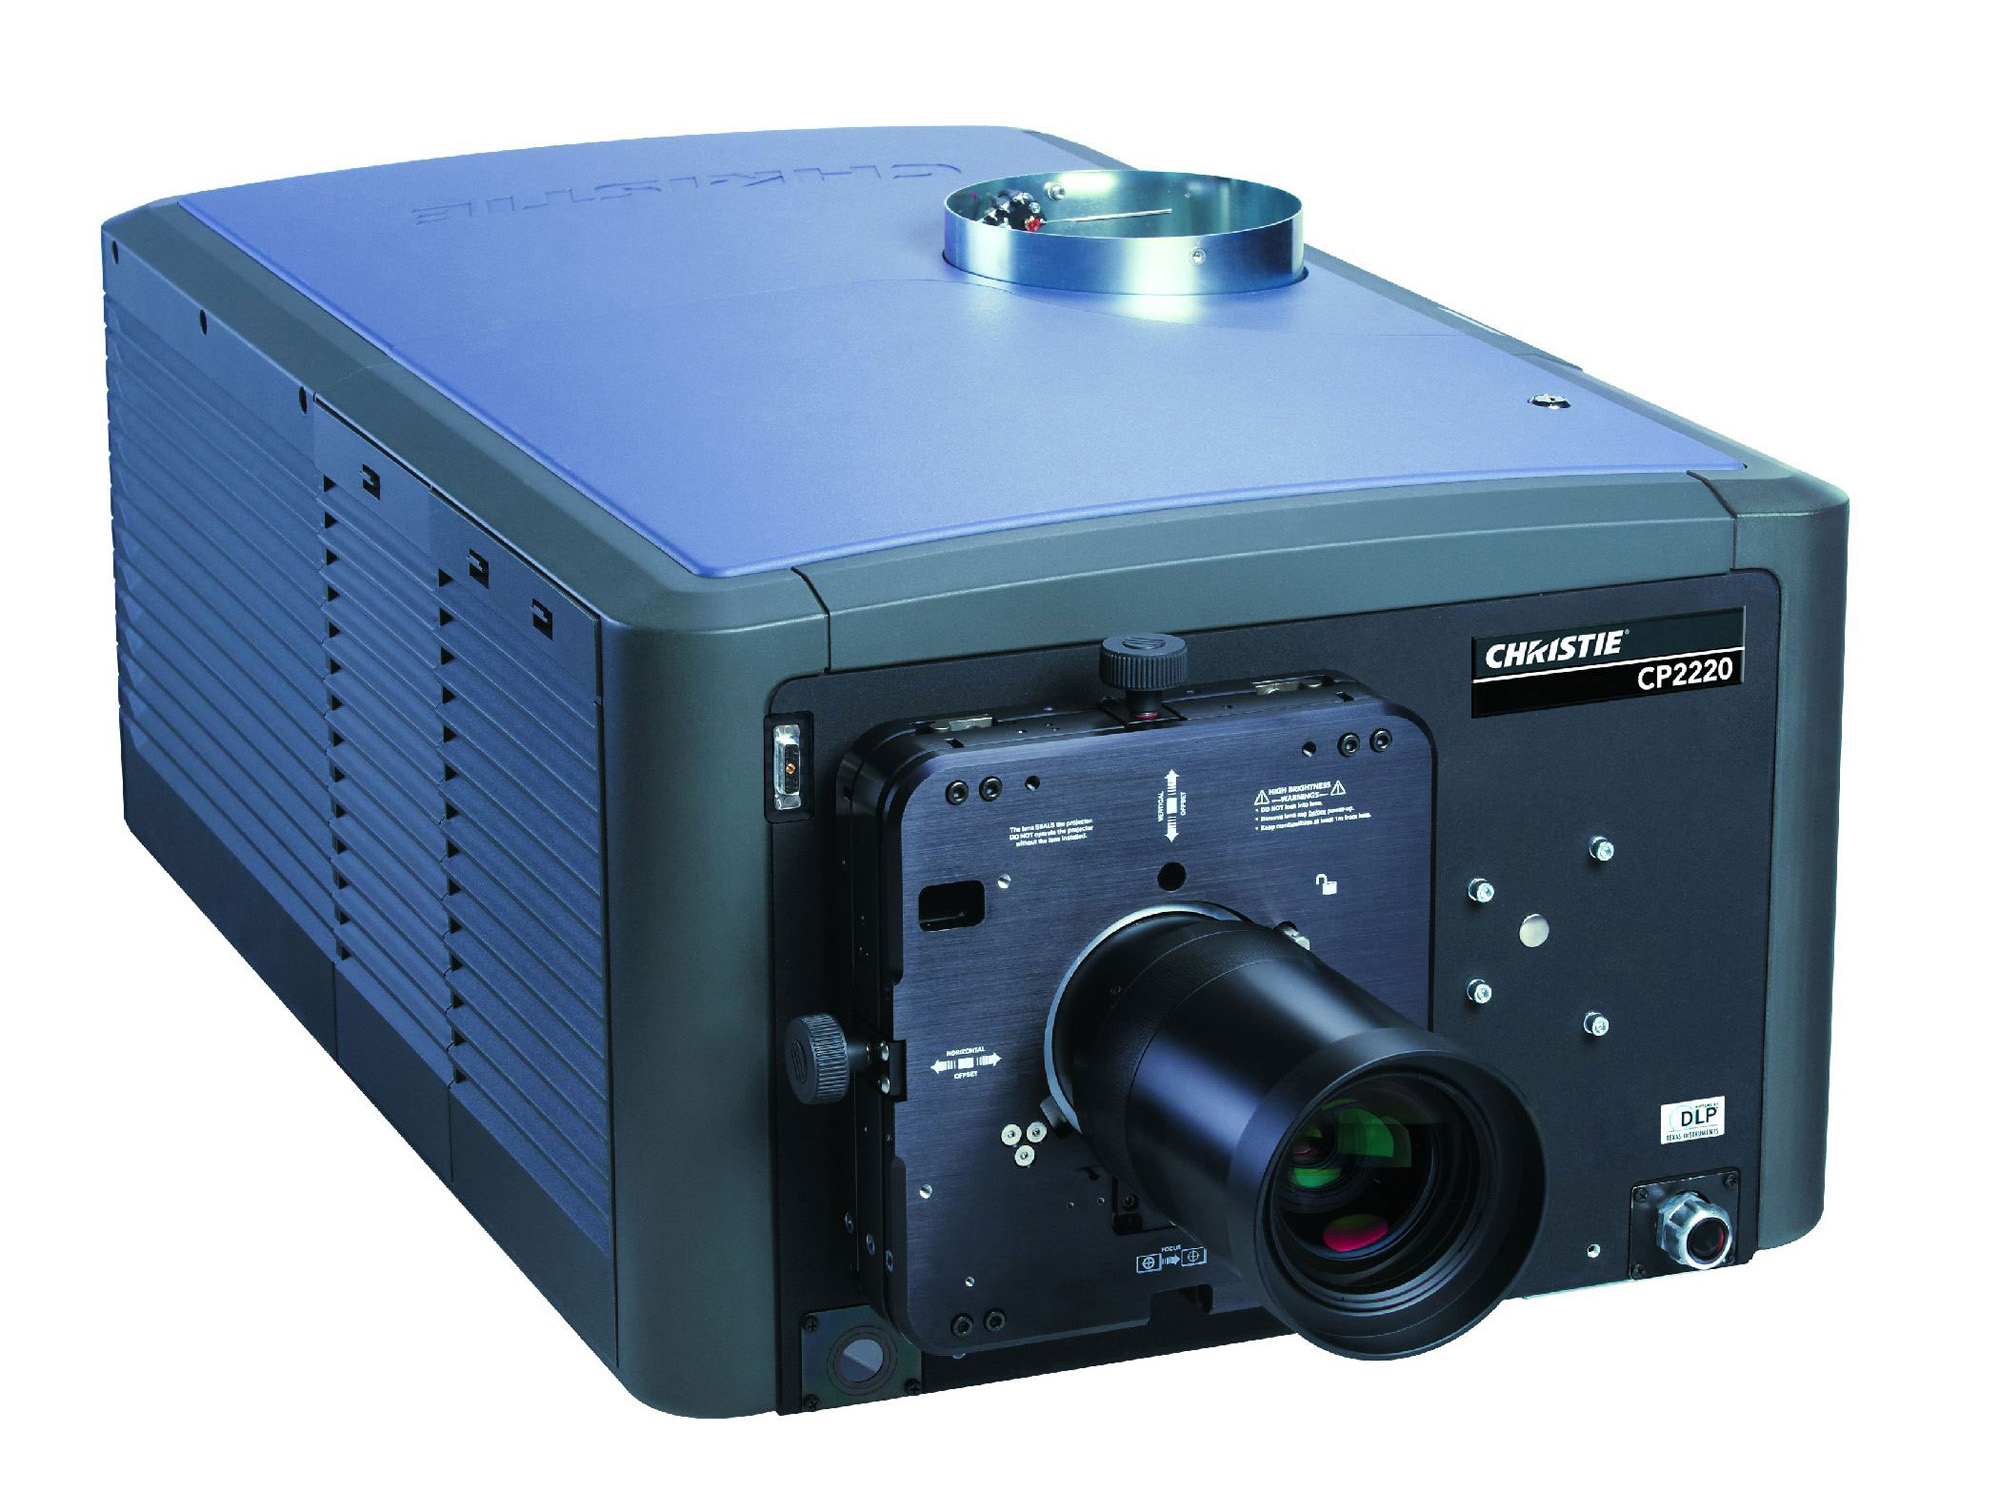 /globalassets/.catalog/products/images/christie-cp2220/gallery/cp2220-digital-cinema-projector-highright.jpg